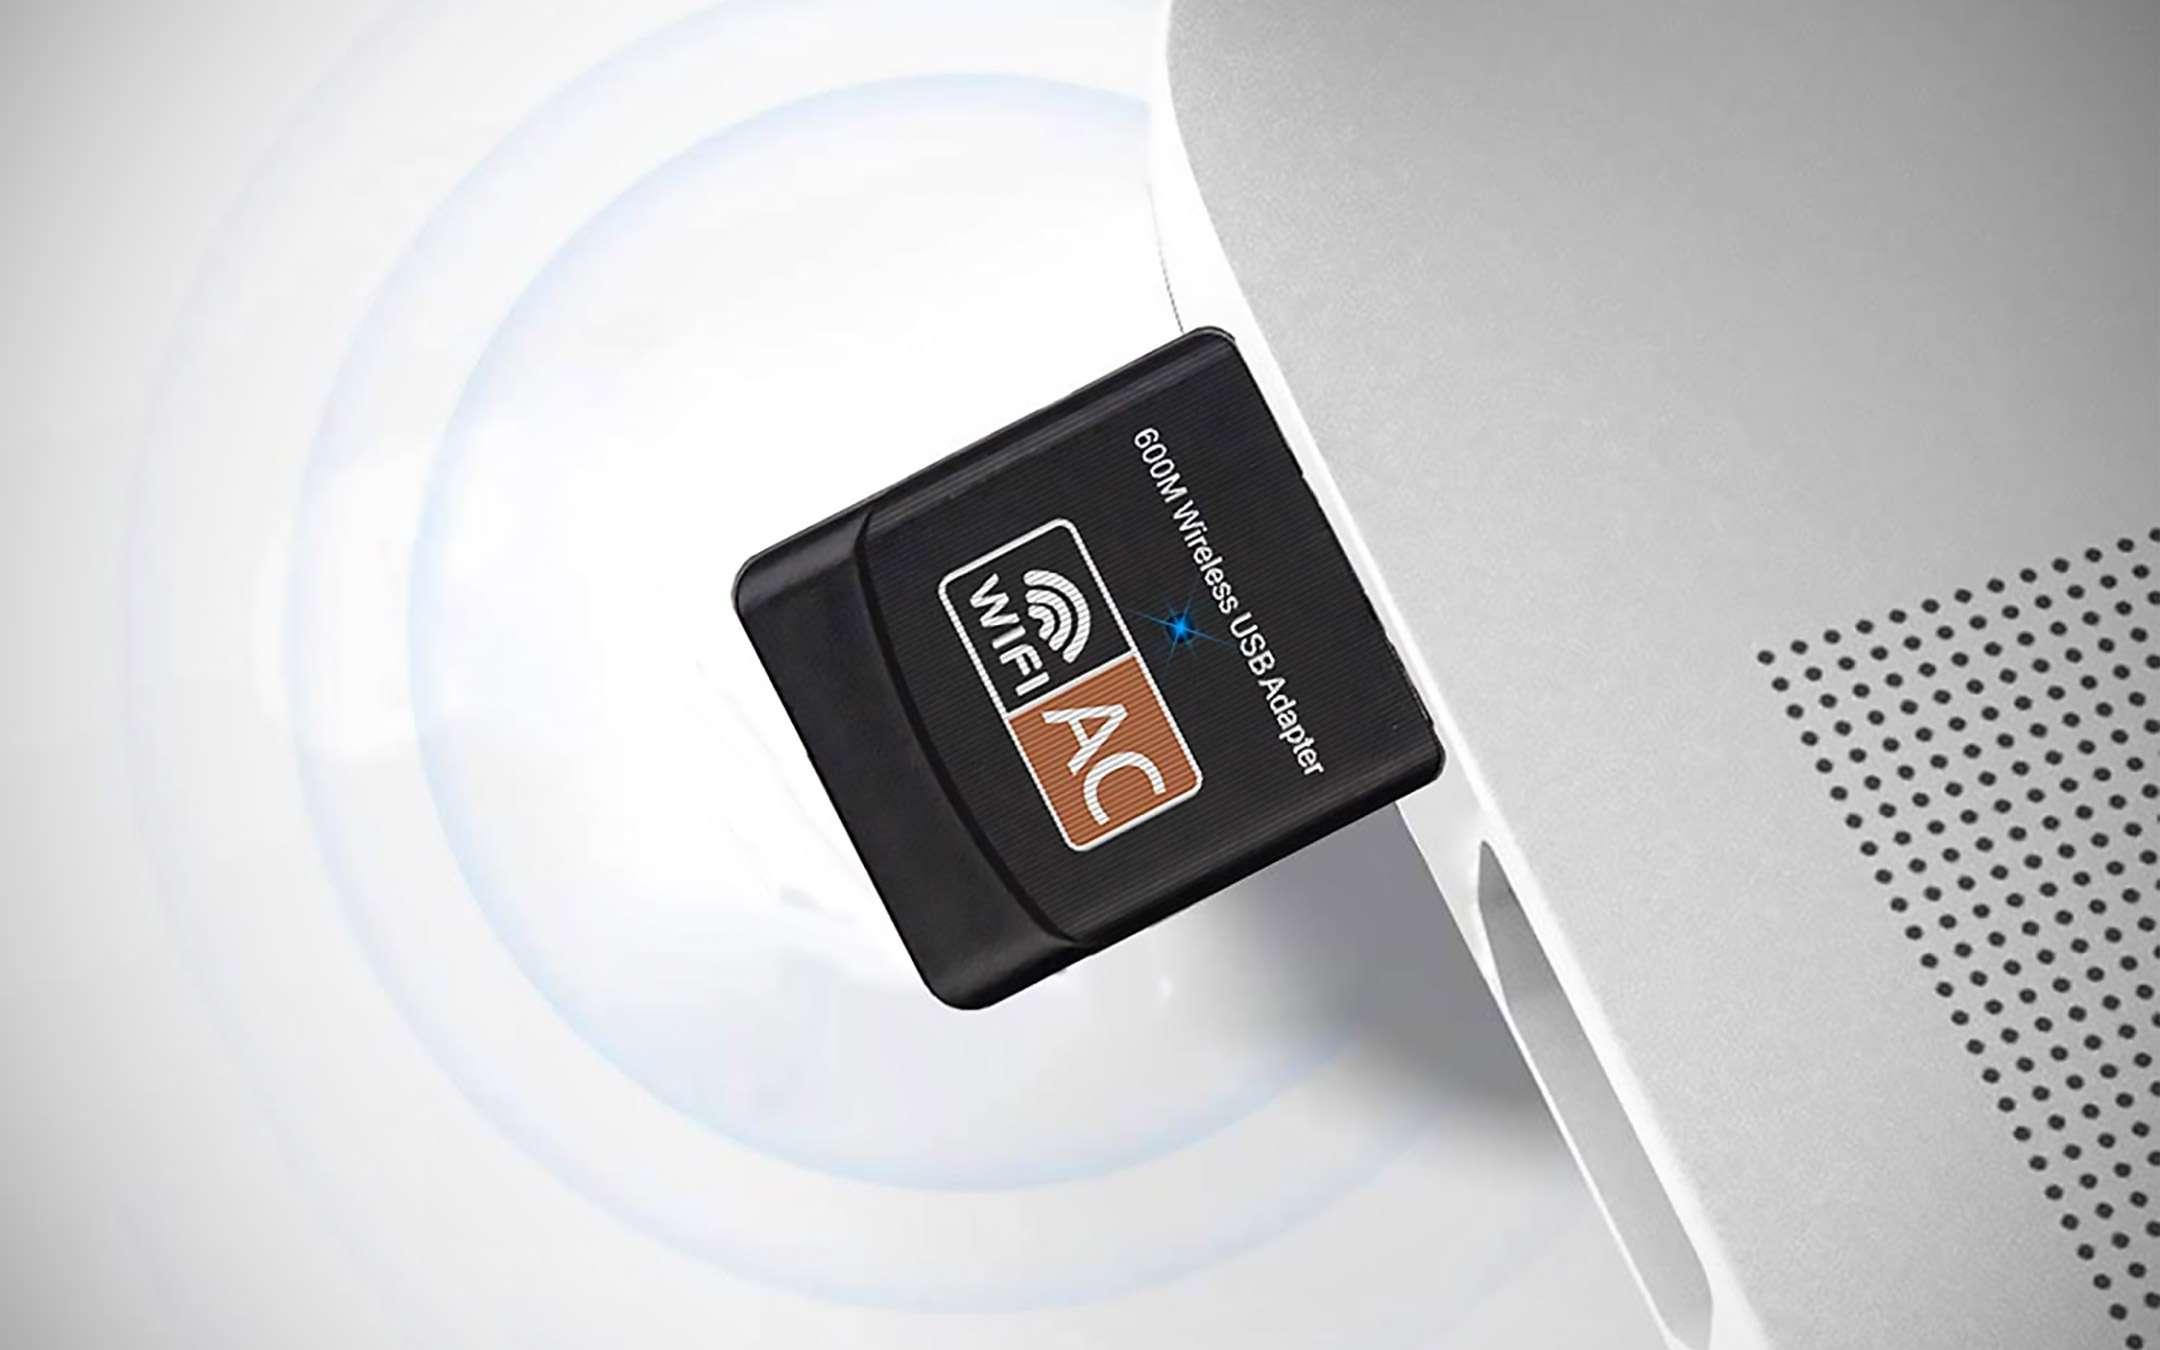 USB WiFi adapter in flash offer on Amazon